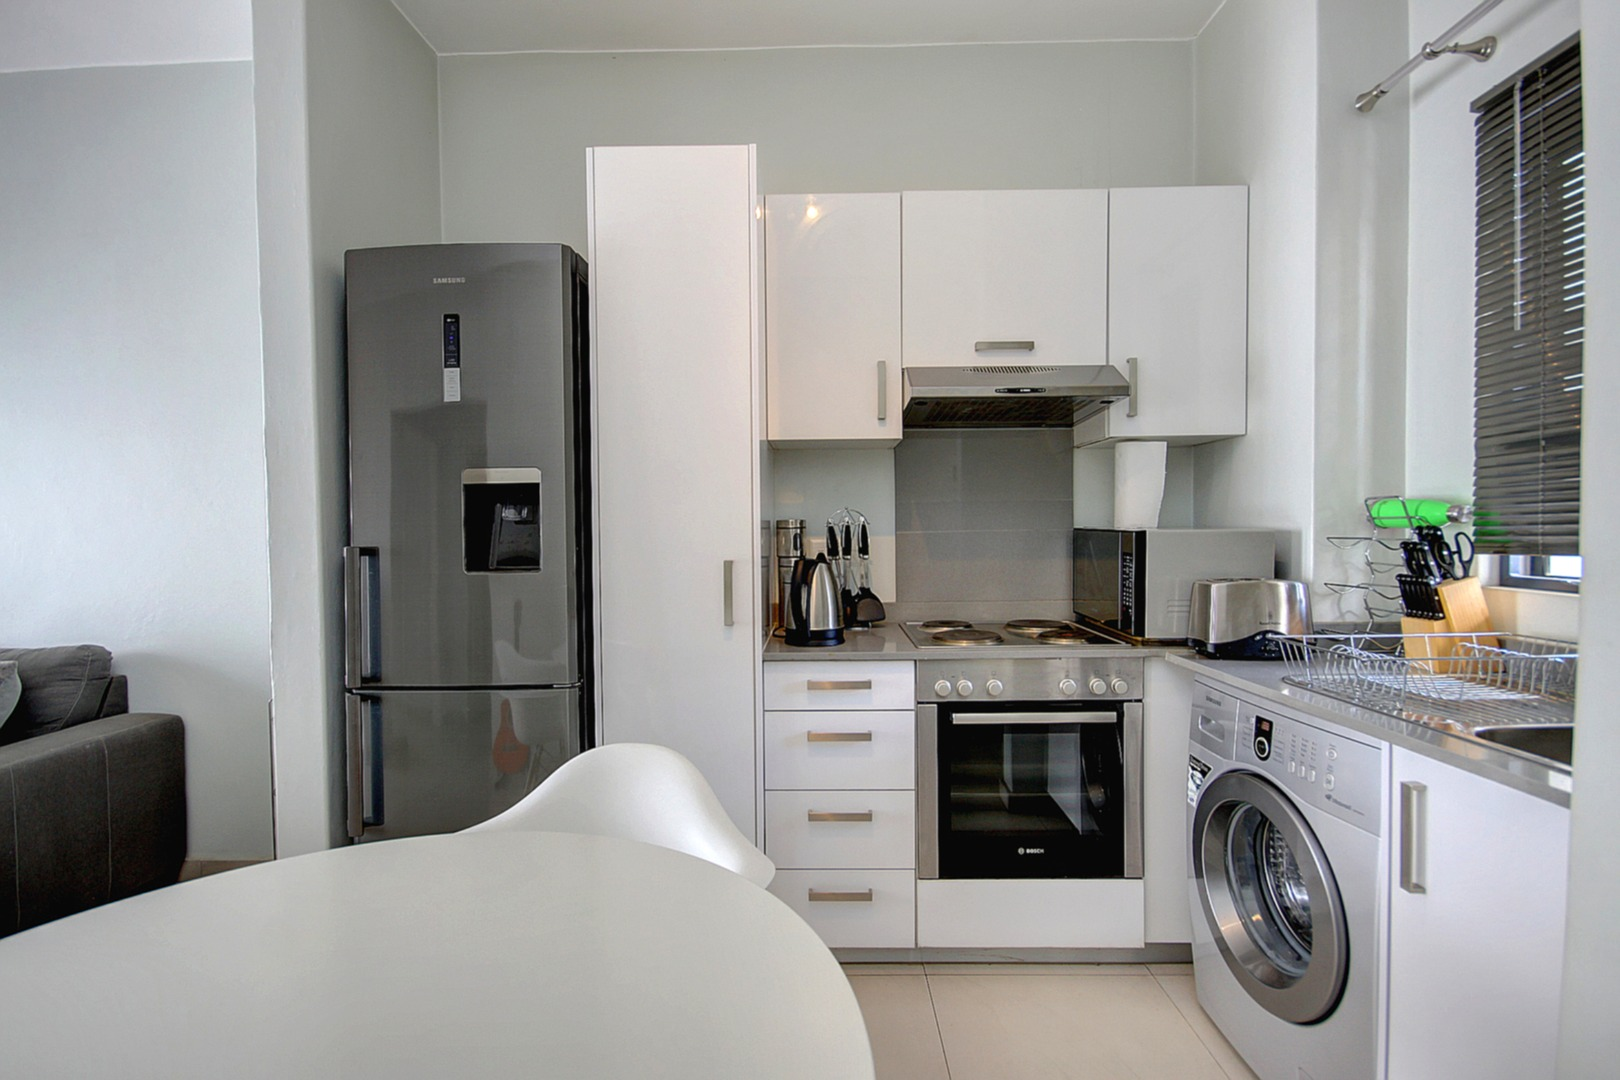 2 Bedroom Apartment / Flat To Rent in North Riding